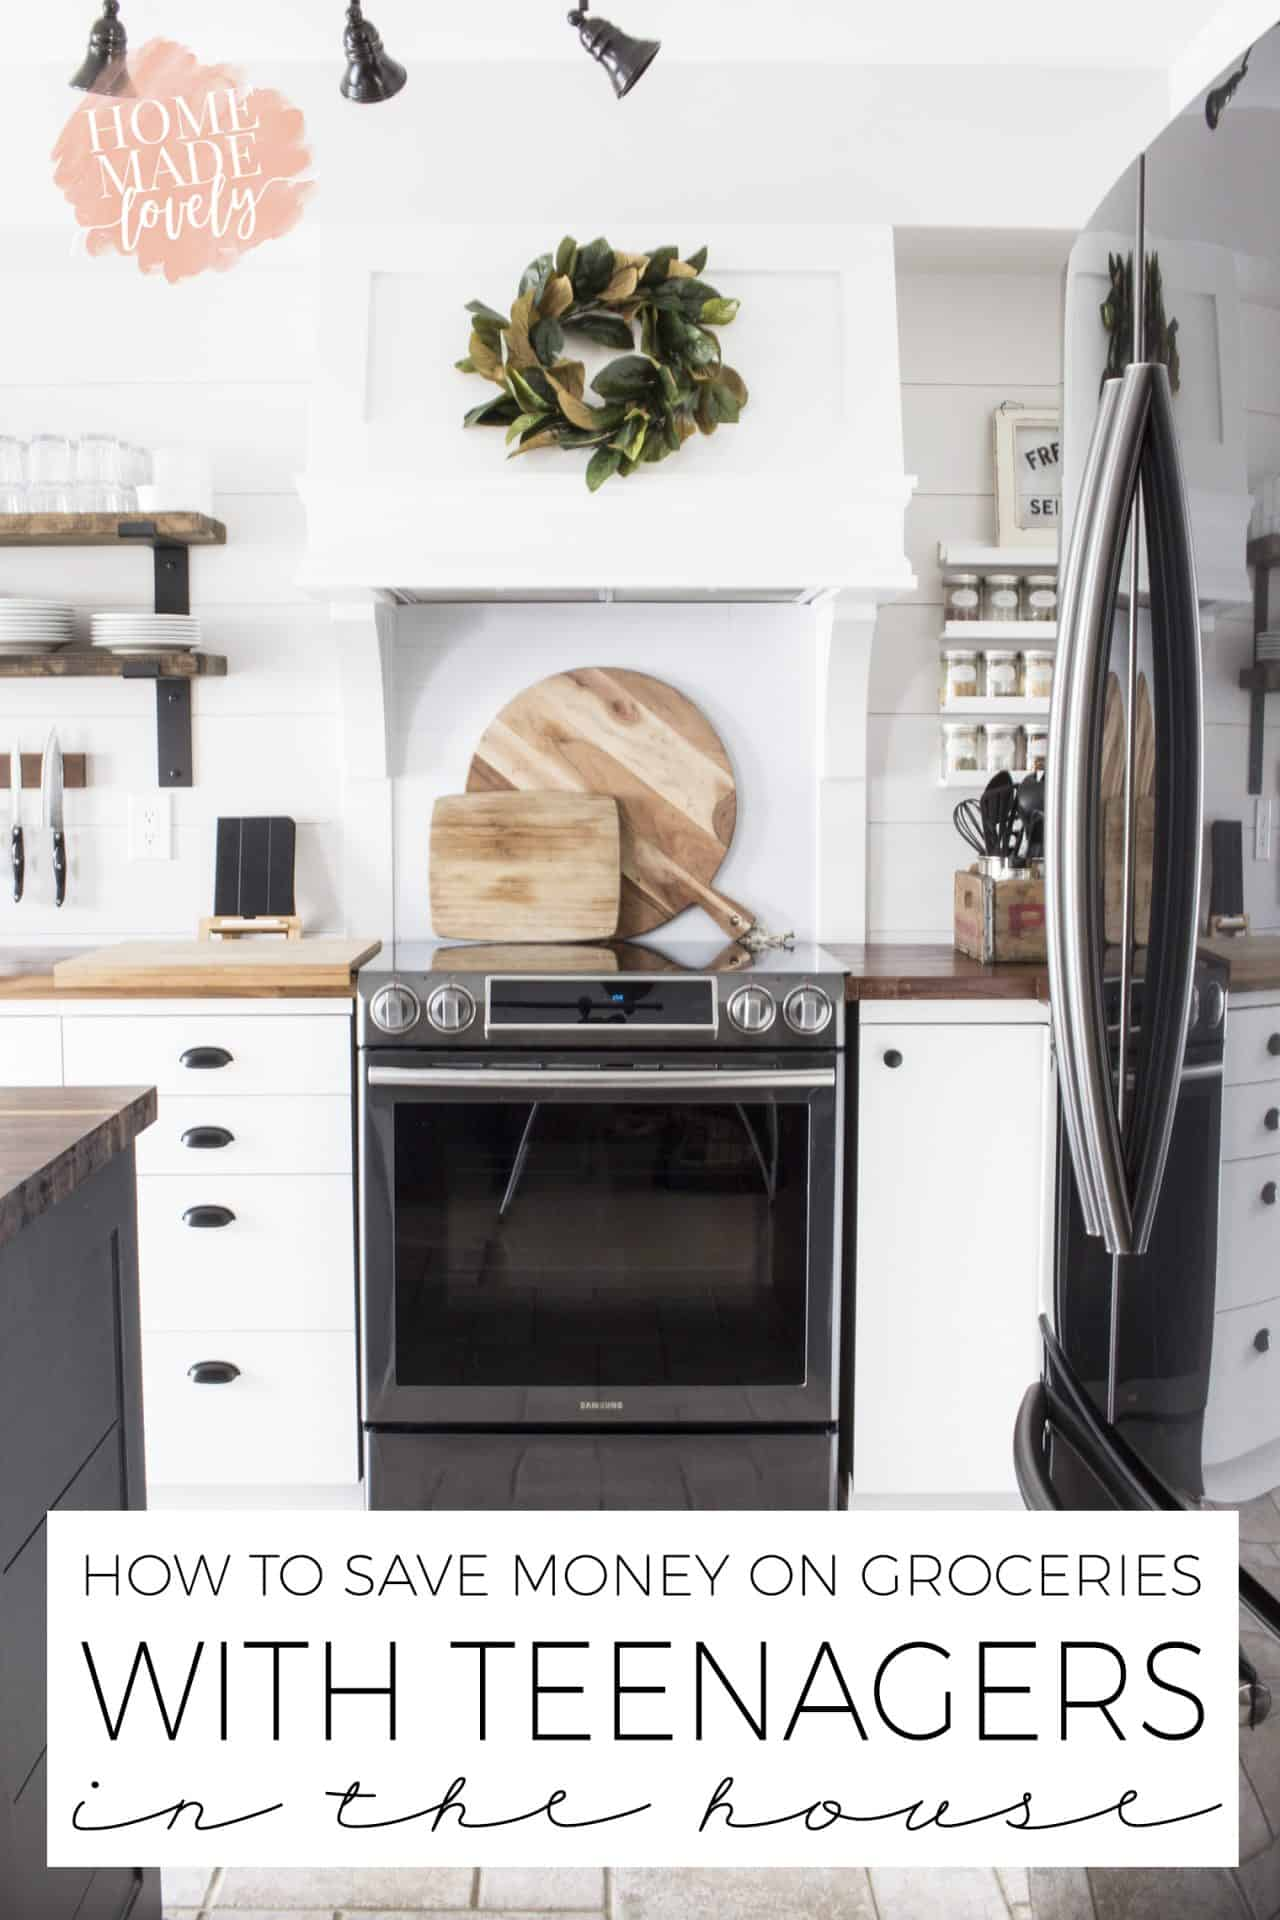 If you have teenagers like we do, you KNOW they eat a lot! Here's how to save money on groceries with teenagers in the house.